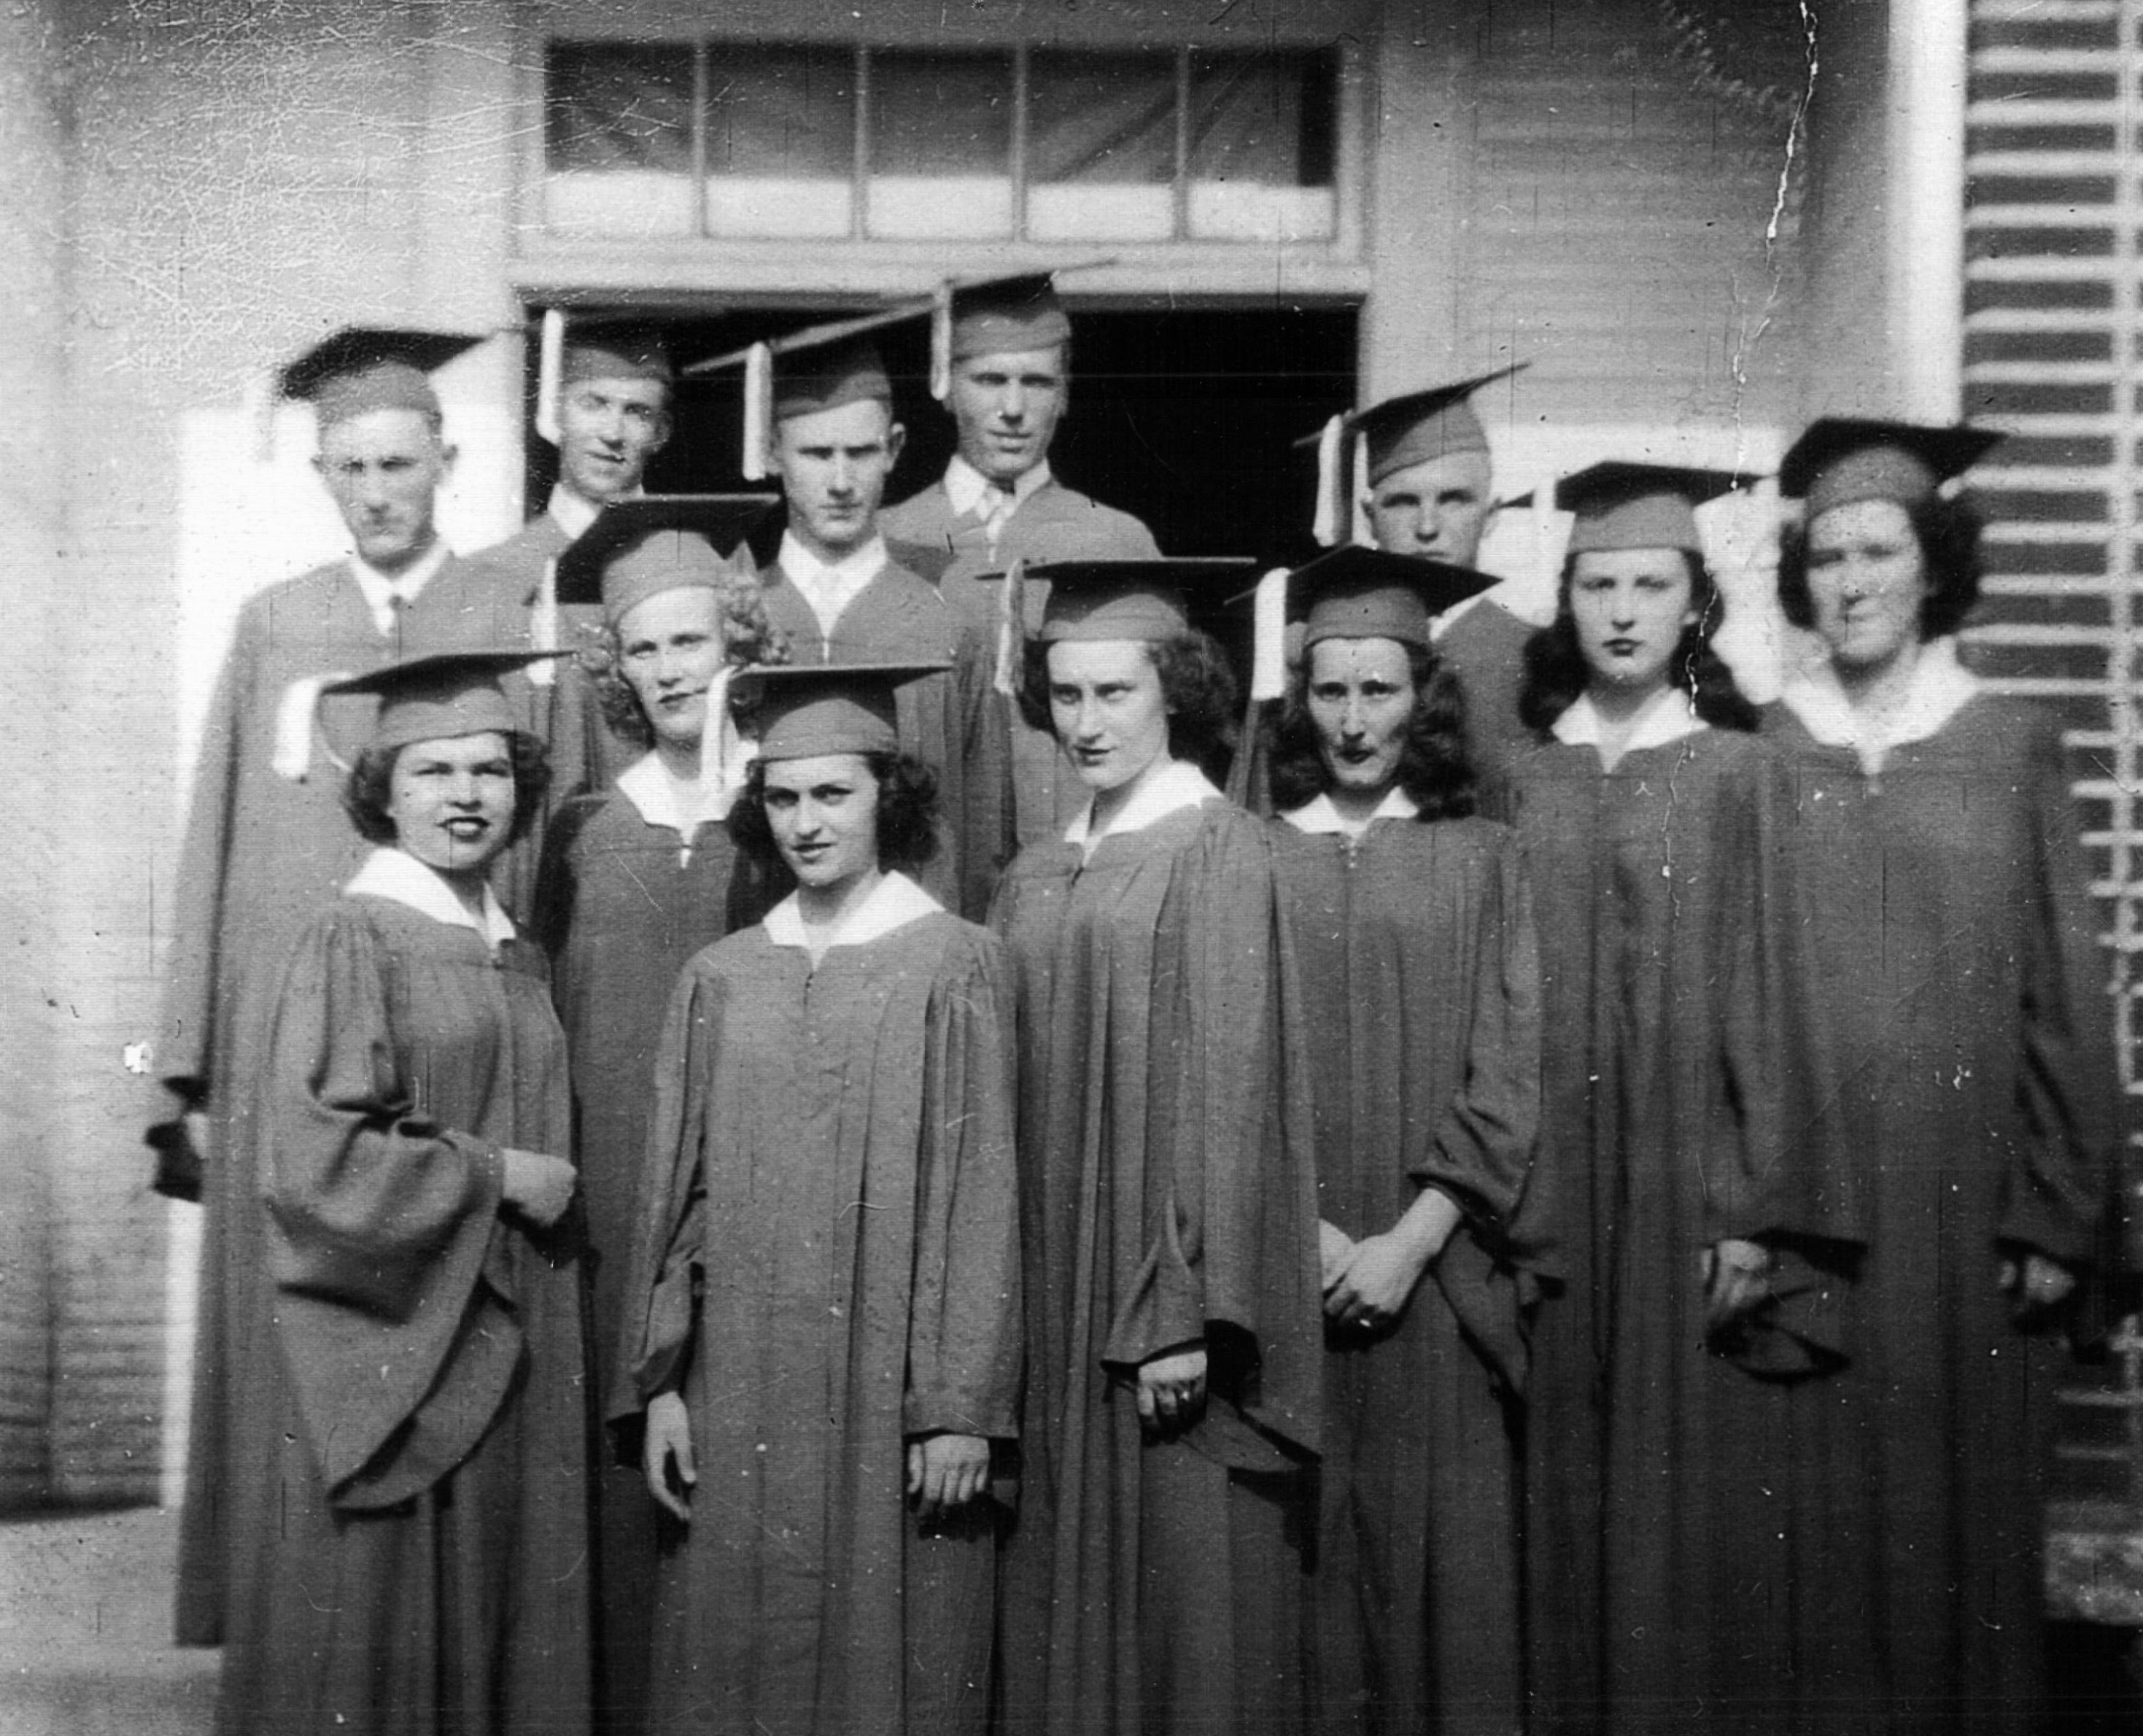 L to R. Back Row: Doyle Milstead, Guy Pope, Billy Scoggins, Hubert Teems, Jerry Perkins. Front Row: Ruby Scoggins, Thelma Kinsy, Laura Brock, Charlene Roper, Esther Seritt, Louise Roper, Eunice Johns.